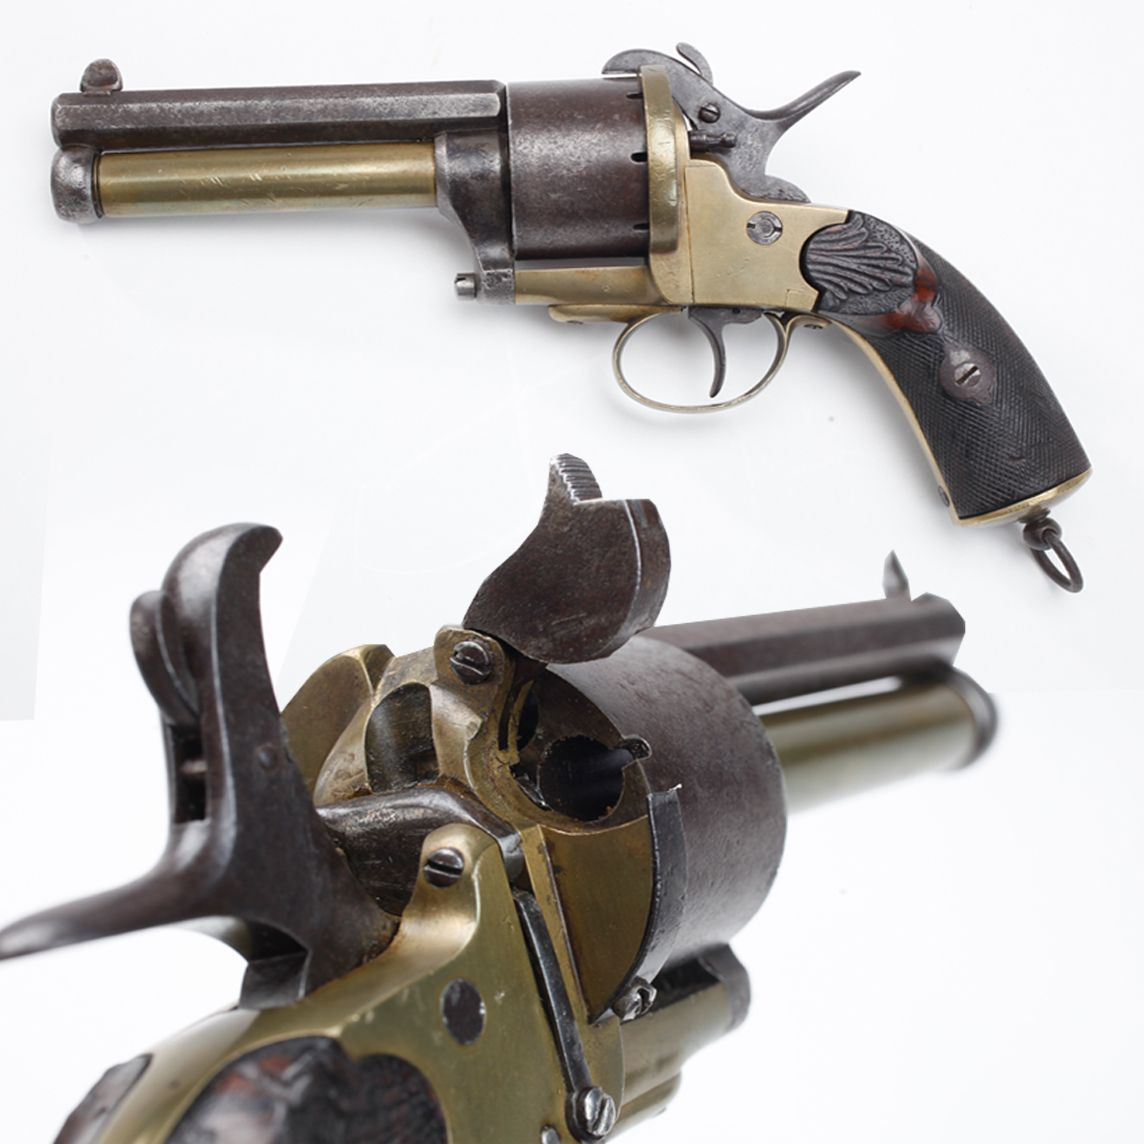 Gen j e b stuart carried this type of french import revolver lemat pistol rob s stuff i like pinterest revolvers civil wars and american civil